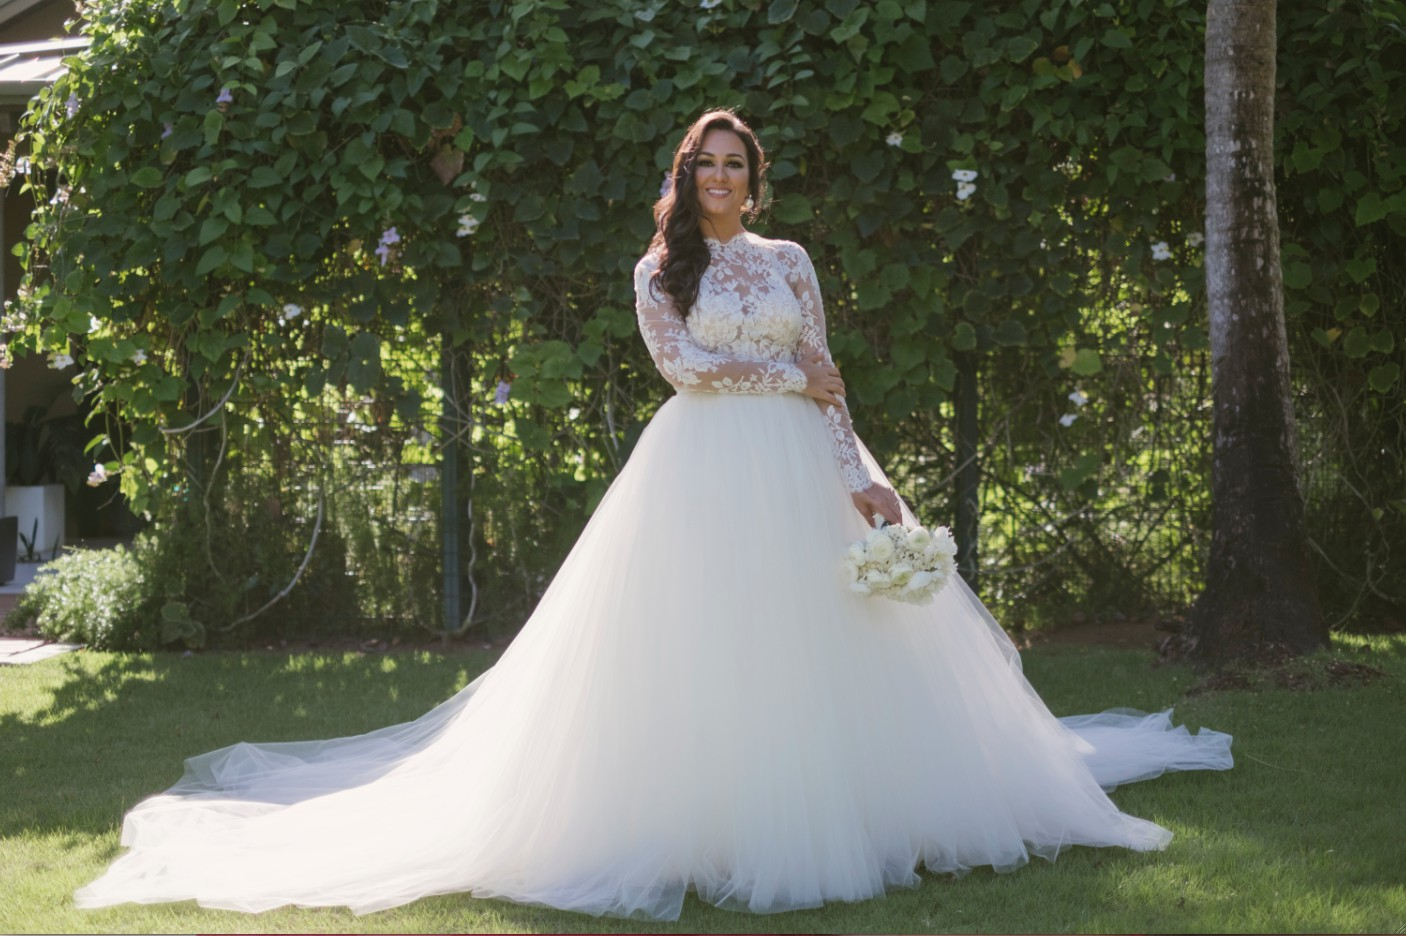 Pronovias Vicenta Second Hand Wedding Dress On Sale: Rosa Clara Niher Second Hand Wedding Dress On Sale 40% Off